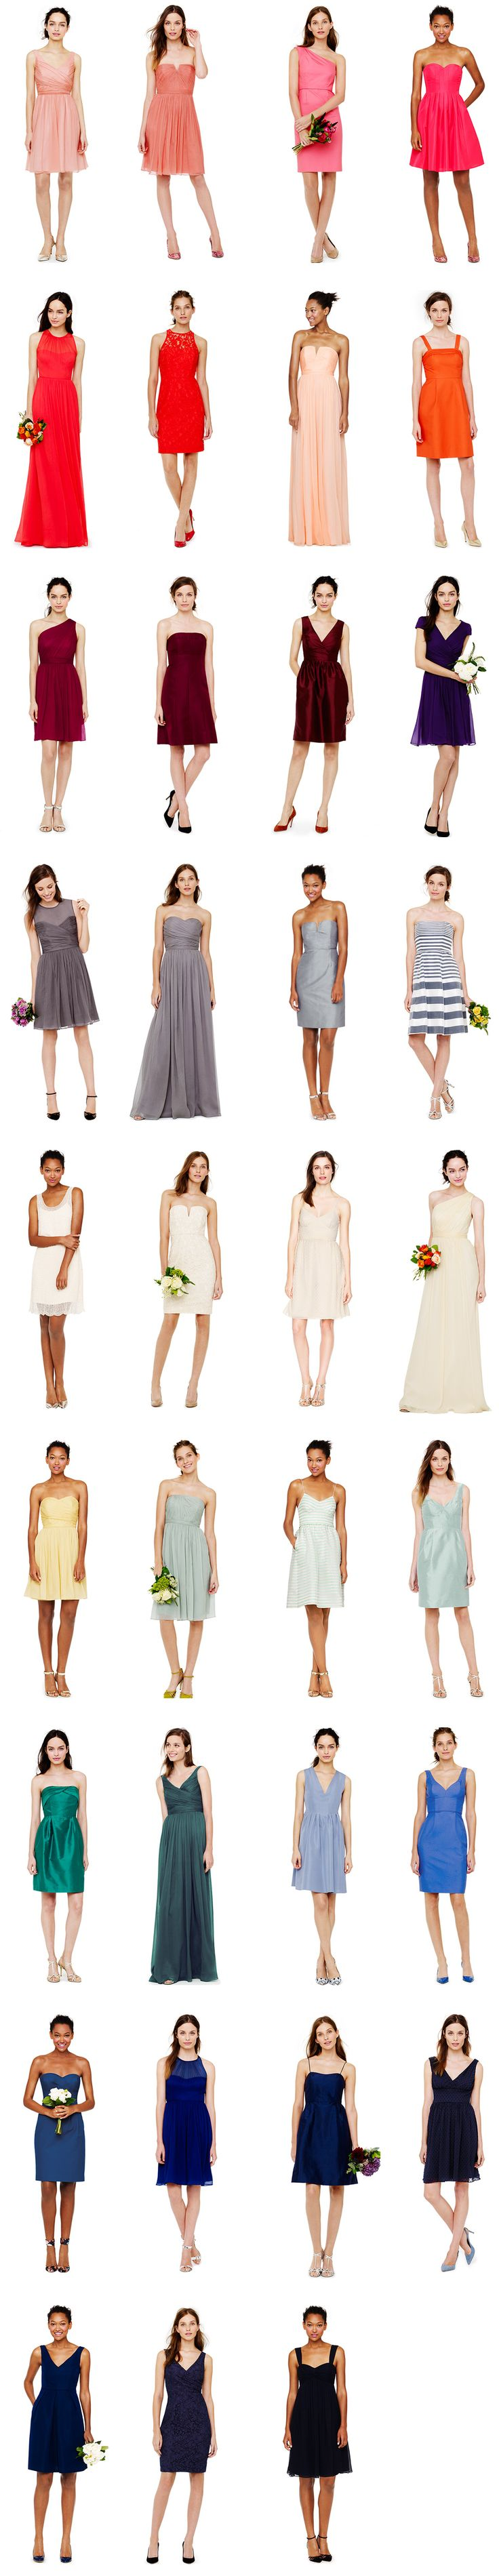 JCREW-There are some nice formal and semi-formal dresses here. Who would have thought JCREW!?